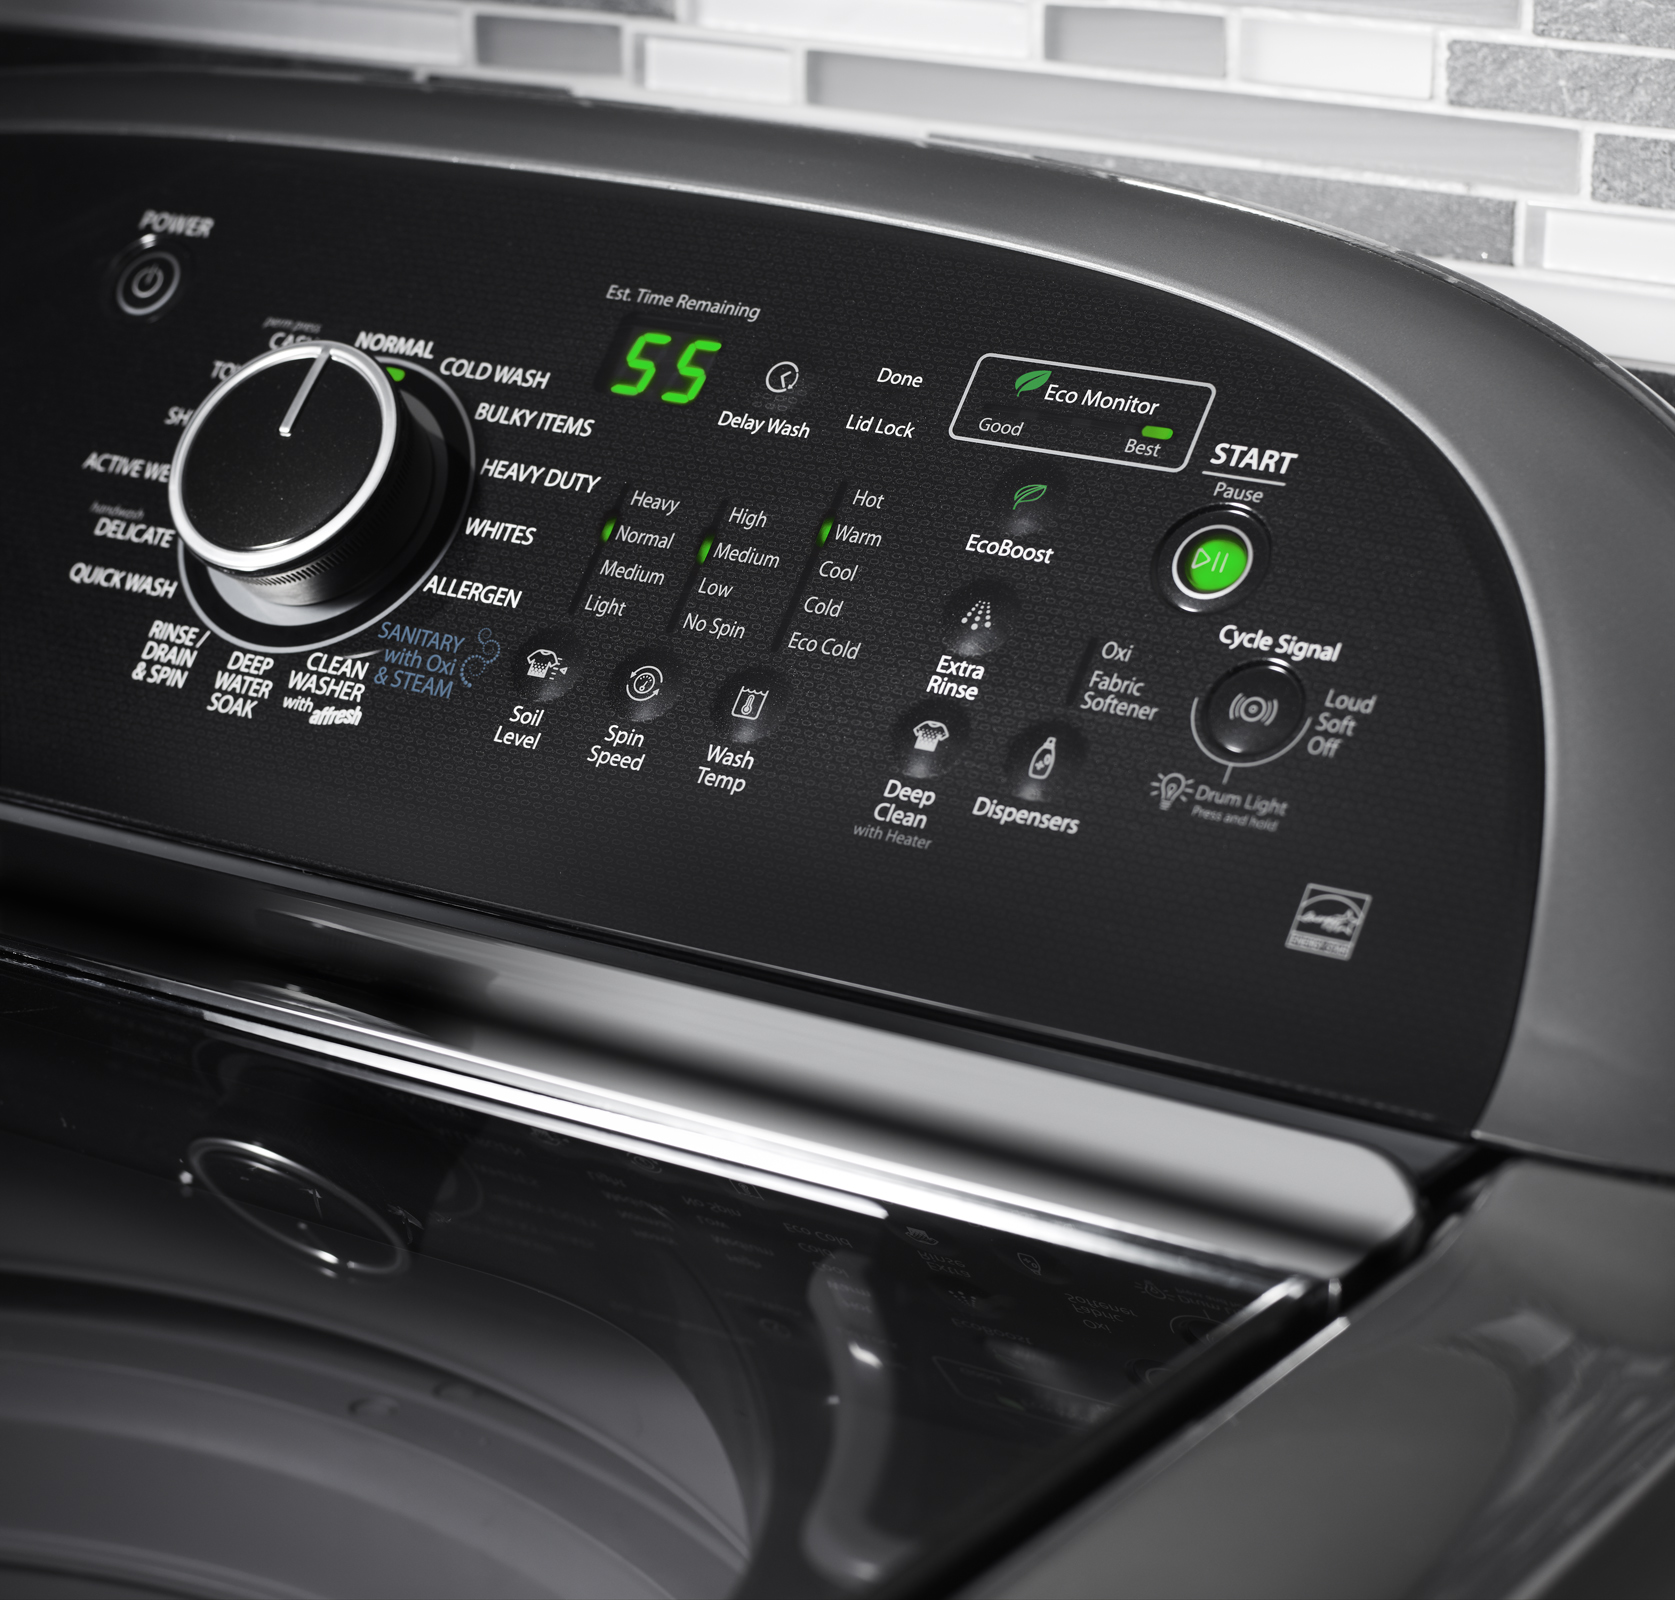 Whirlpool 4.8 cu. ft. Cabrio® Platinum HE Top-Load Washer w/ Greater Capacity - Chrome Shadow